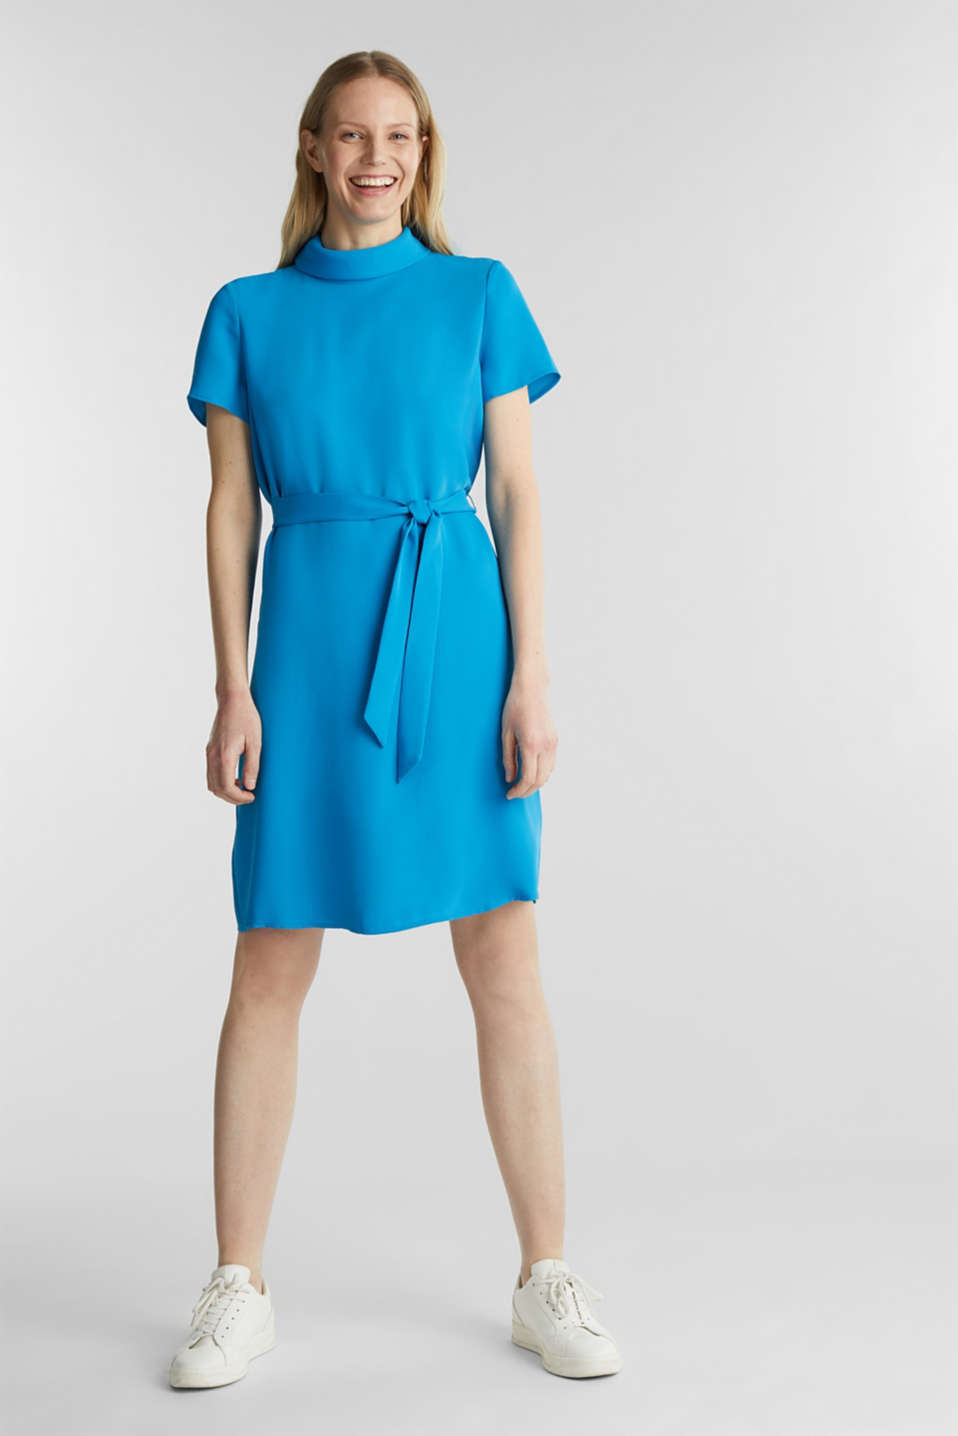 Cloth polo neck dress, DARK TURQUOISE, detail image number 1